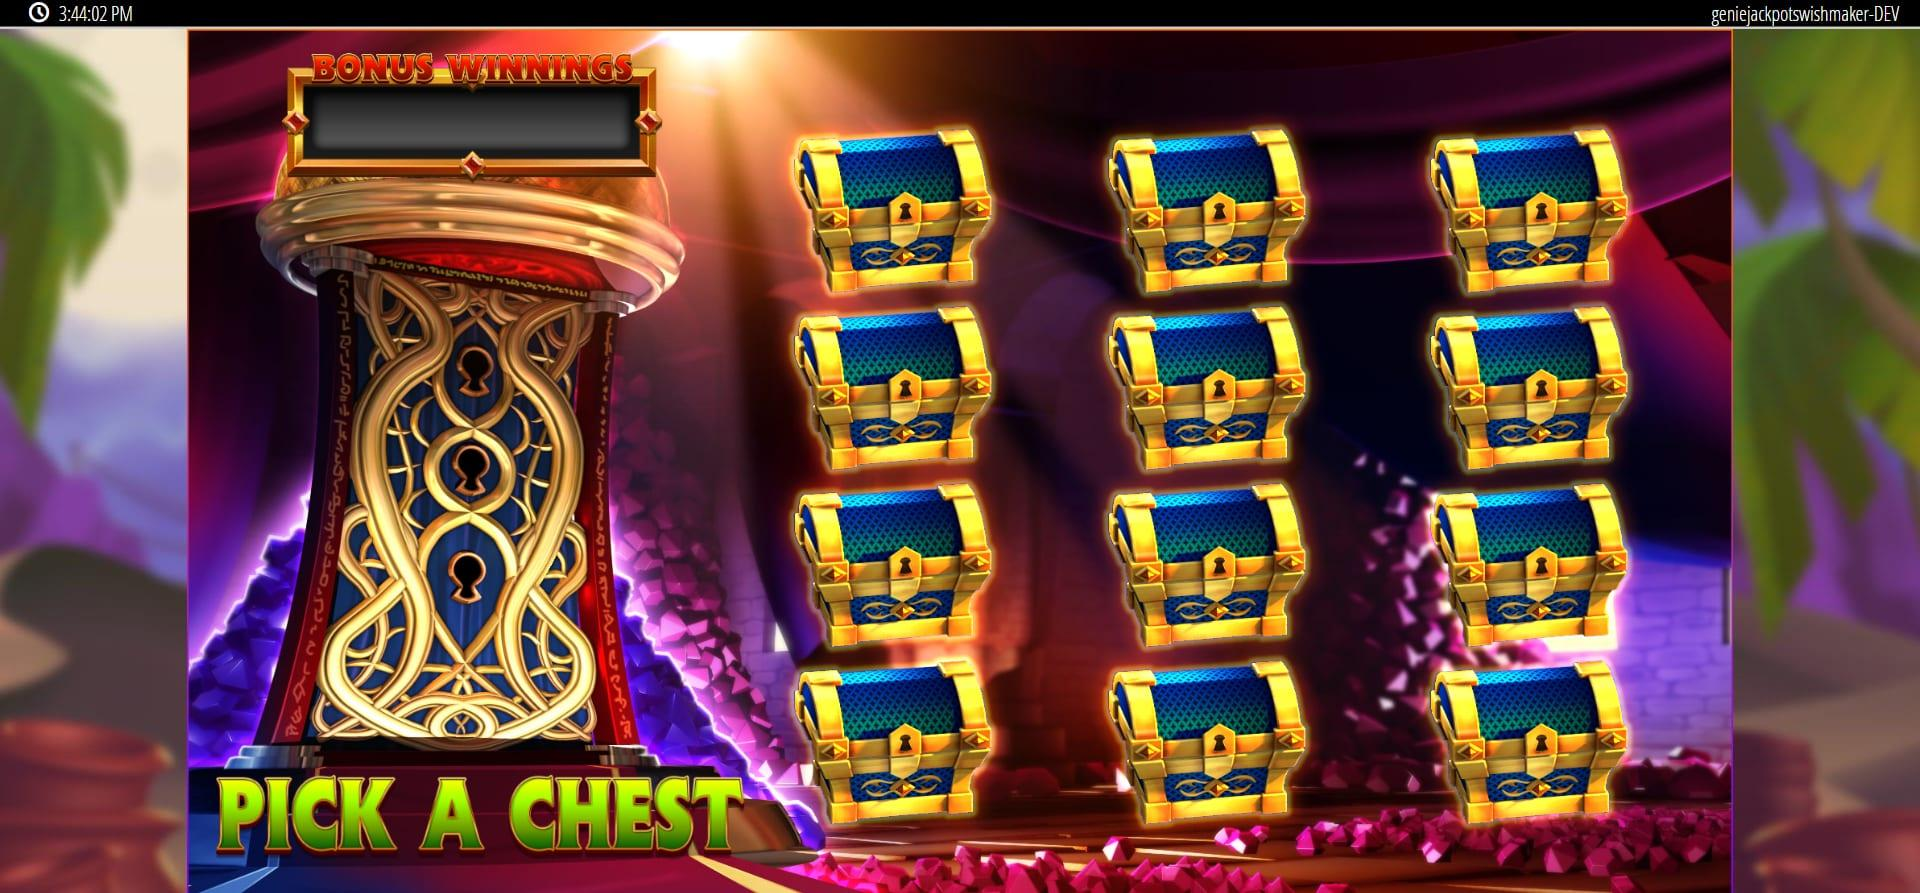 Genie Jackpots Wishmaker Paytable: The low-paying symbols in this slot game are inspired by the classic playing cards deck. You will encounter skillfully designed Js, Qs, Ks and As that follow that fit the theme perfectly.